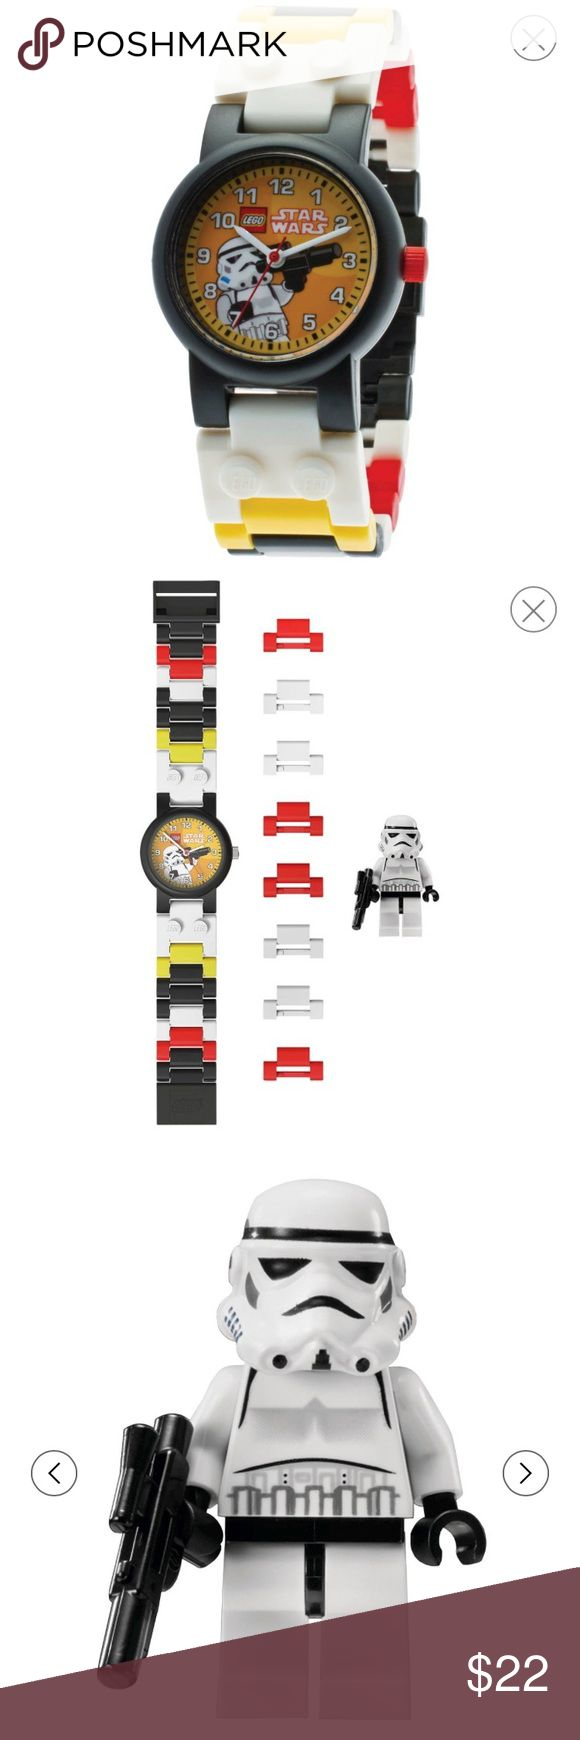 LEGO® Star Wars Storm Trooper Watch + Mini Figure LEGO® Star Wars Storm Trooper Watch with Mini Figure Your little Star Wars fan can build his own timepiece with the LEGO Star Wars Stormtrooper watch. It comes with a Stormtrooper mini figure for extra playtime fun. This LEGO kids' watch has a face with the image of a Stormtrooper and 19 multicolored pieces that can be assembled in any pattern to create a customized wristband. It has a clasp closure for easy wear and removal. The watch is…